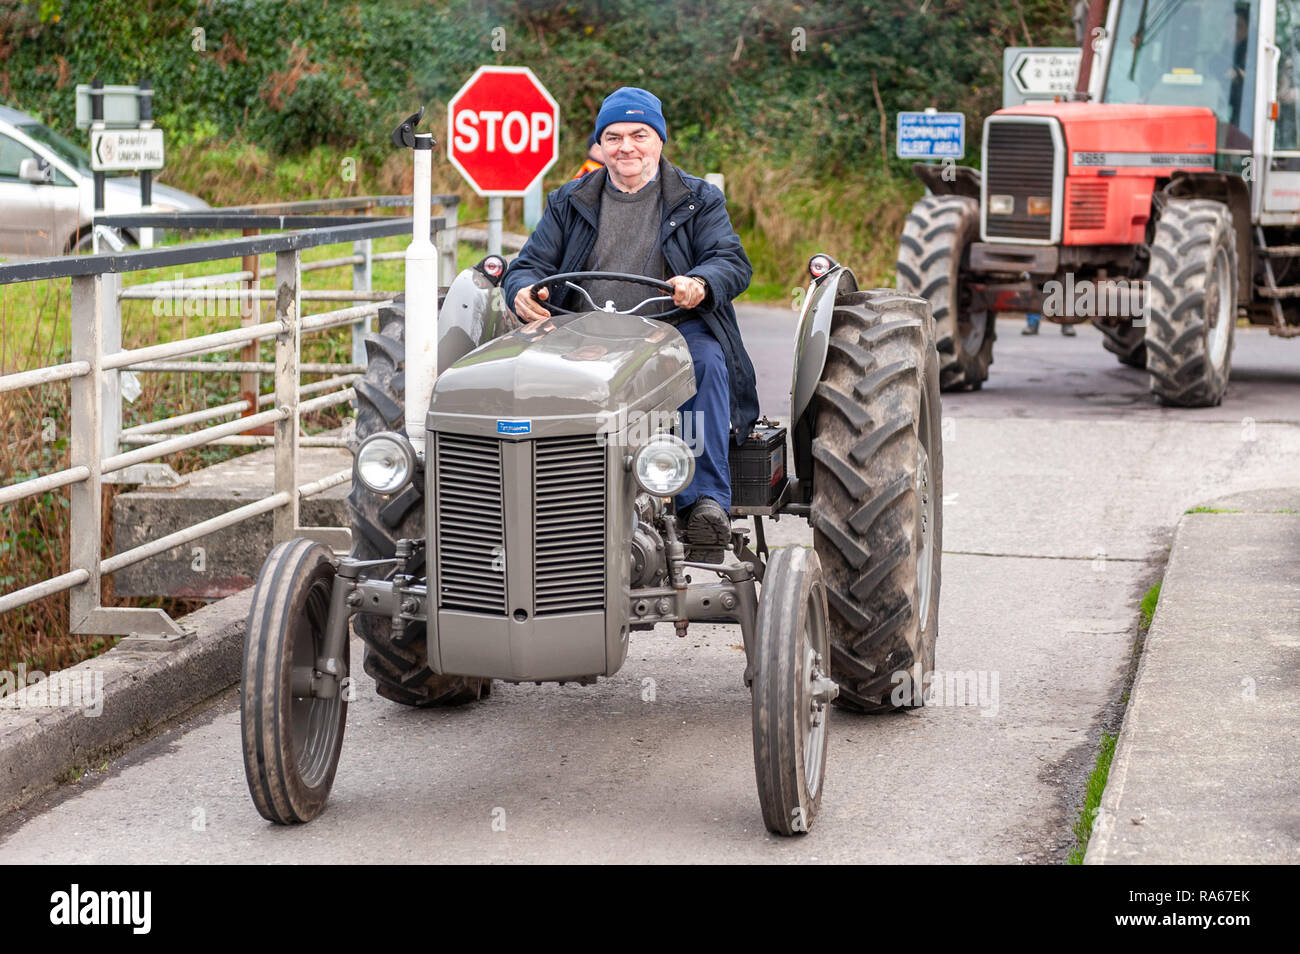 Glandore, West Cork, Ireland. 1st Jan, 2019. Leap and District Vintage Club held a New Year's Day tractor and car run in aid of the Glandore National School Building Fund earlier today. Over 60 tractors and cars signed on for the run. The tractors crossed the famous Union Hall bridge during the run. Credit: Andy Gibson/Alamy Live News. - Stock Image